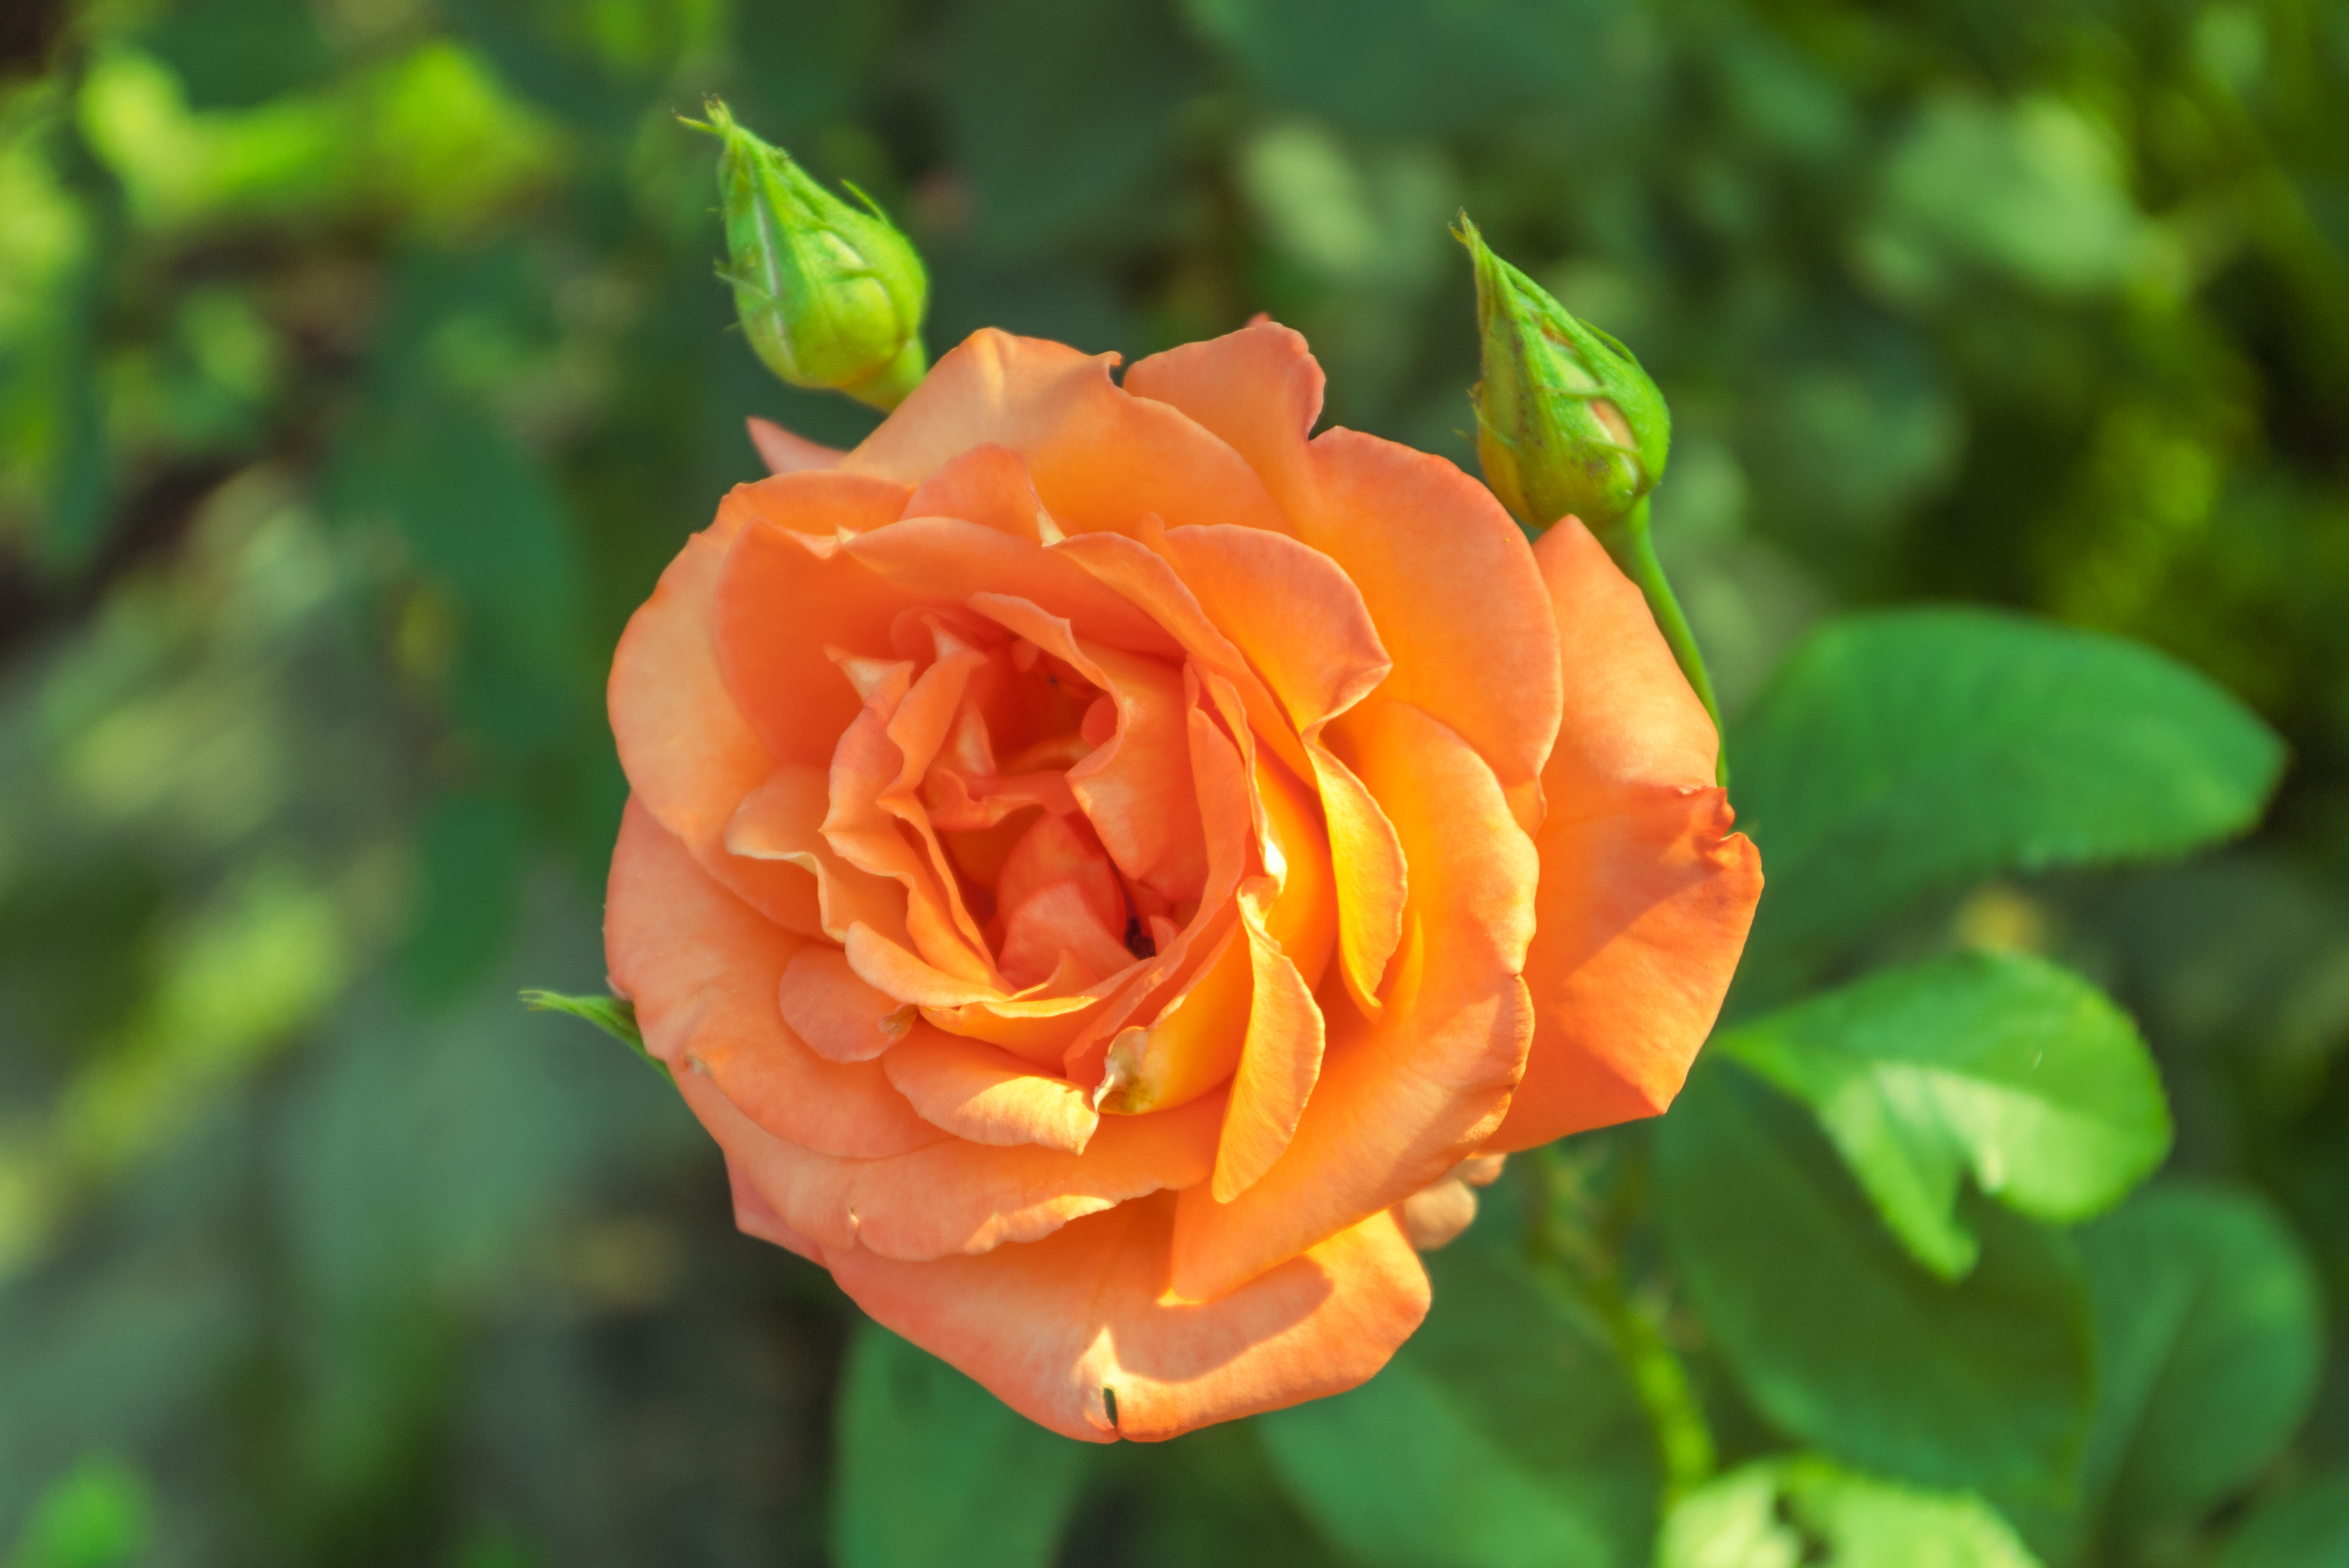 Rose Care Tips: How to Keep Roses Blooming All Summer